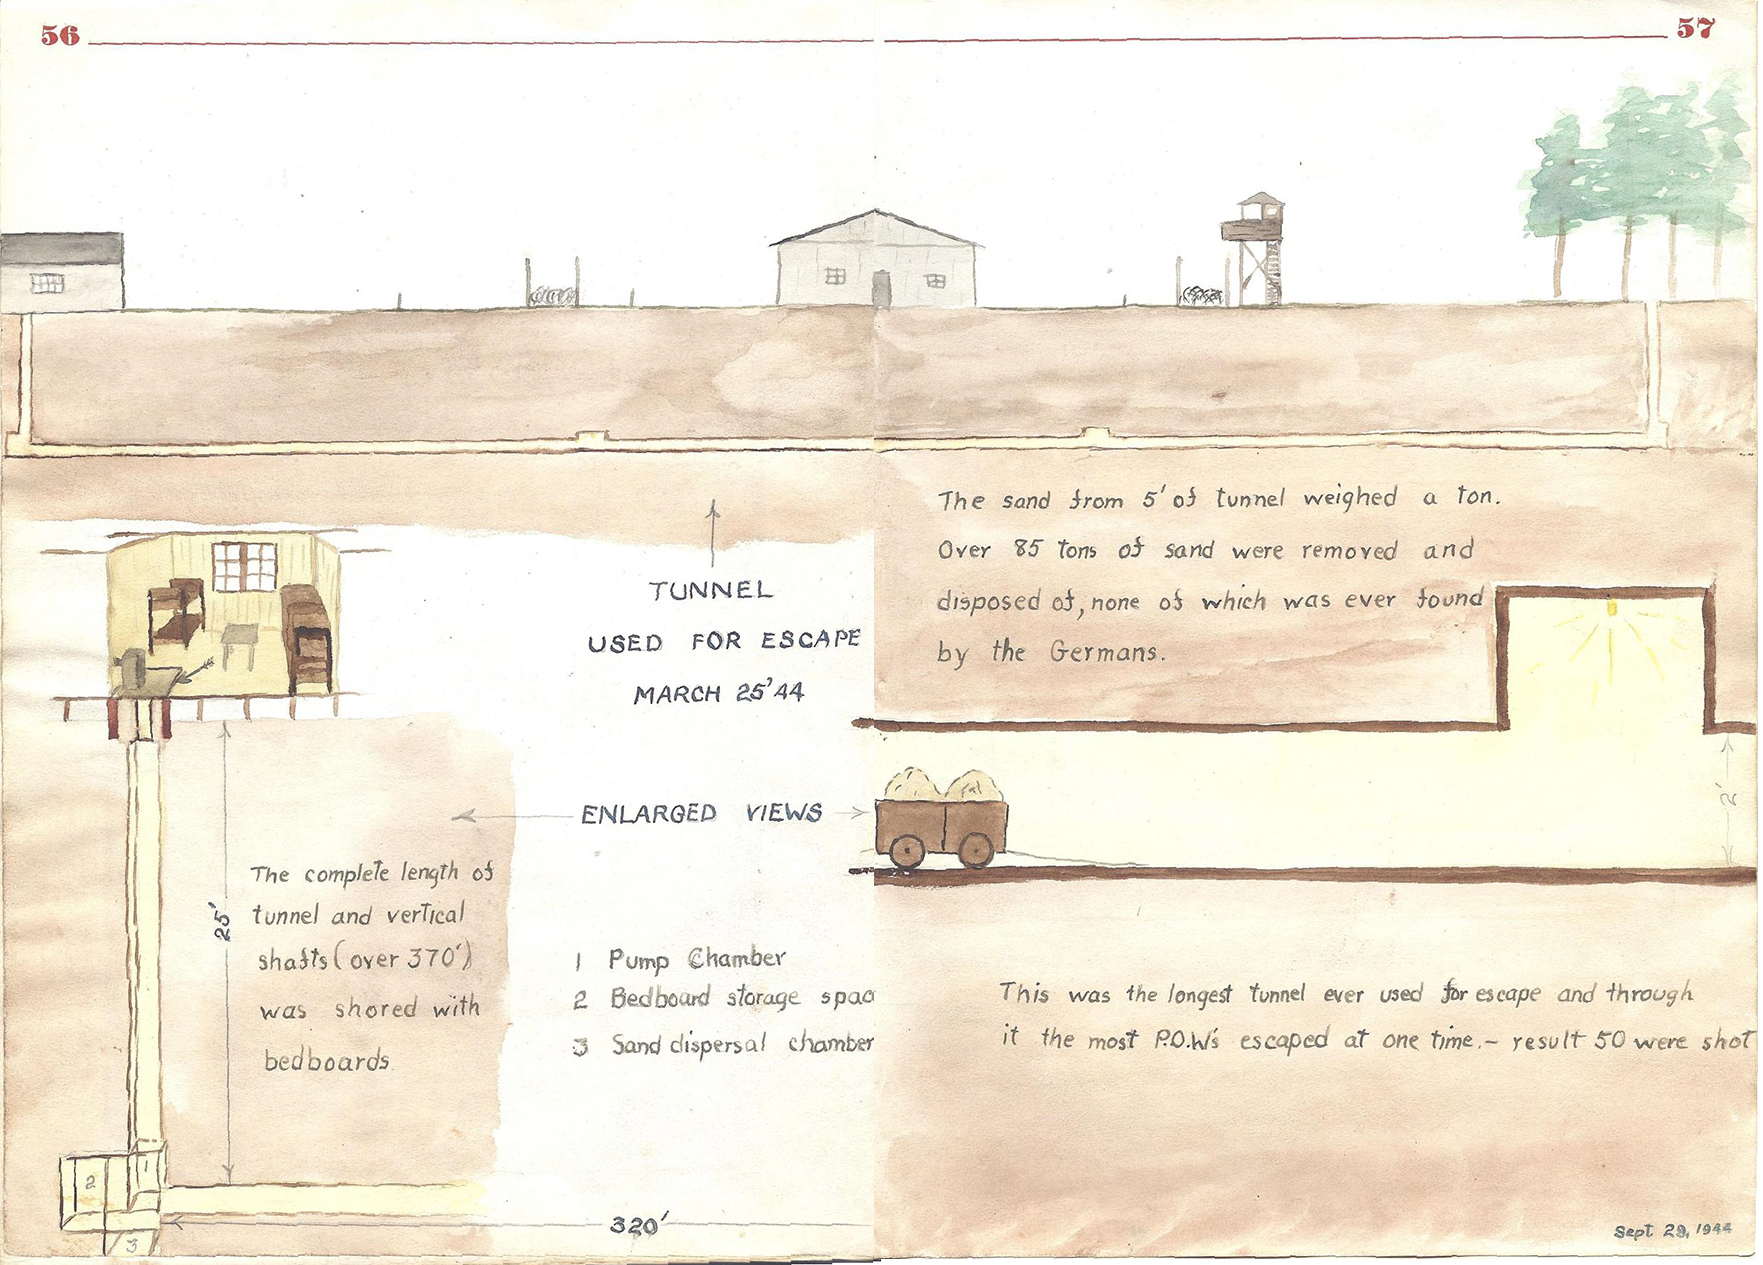 "A diagram of the ""Great Escape"" tunnel as of March 25, 1944, from the diary of Flight Lieutenant John Colwell. The illustration is dated September 28, 1944 and notations on the illustration include comments such as ""the complete length of the vertical shafts (over 370 feet) was shored with bedboards"", ""The sand from 5 feet of tunnel weighed a ton. Over 85 tons of sand were removed and disposed of, none of which was ever found by the Germans"", and ""This was the longest tunnel ever used for escape and through it the most P.O.W.'s escaped at one time—result 50 were shot"". IMAGE: Colwell Diary, courtesy Comox Air Force Museum"